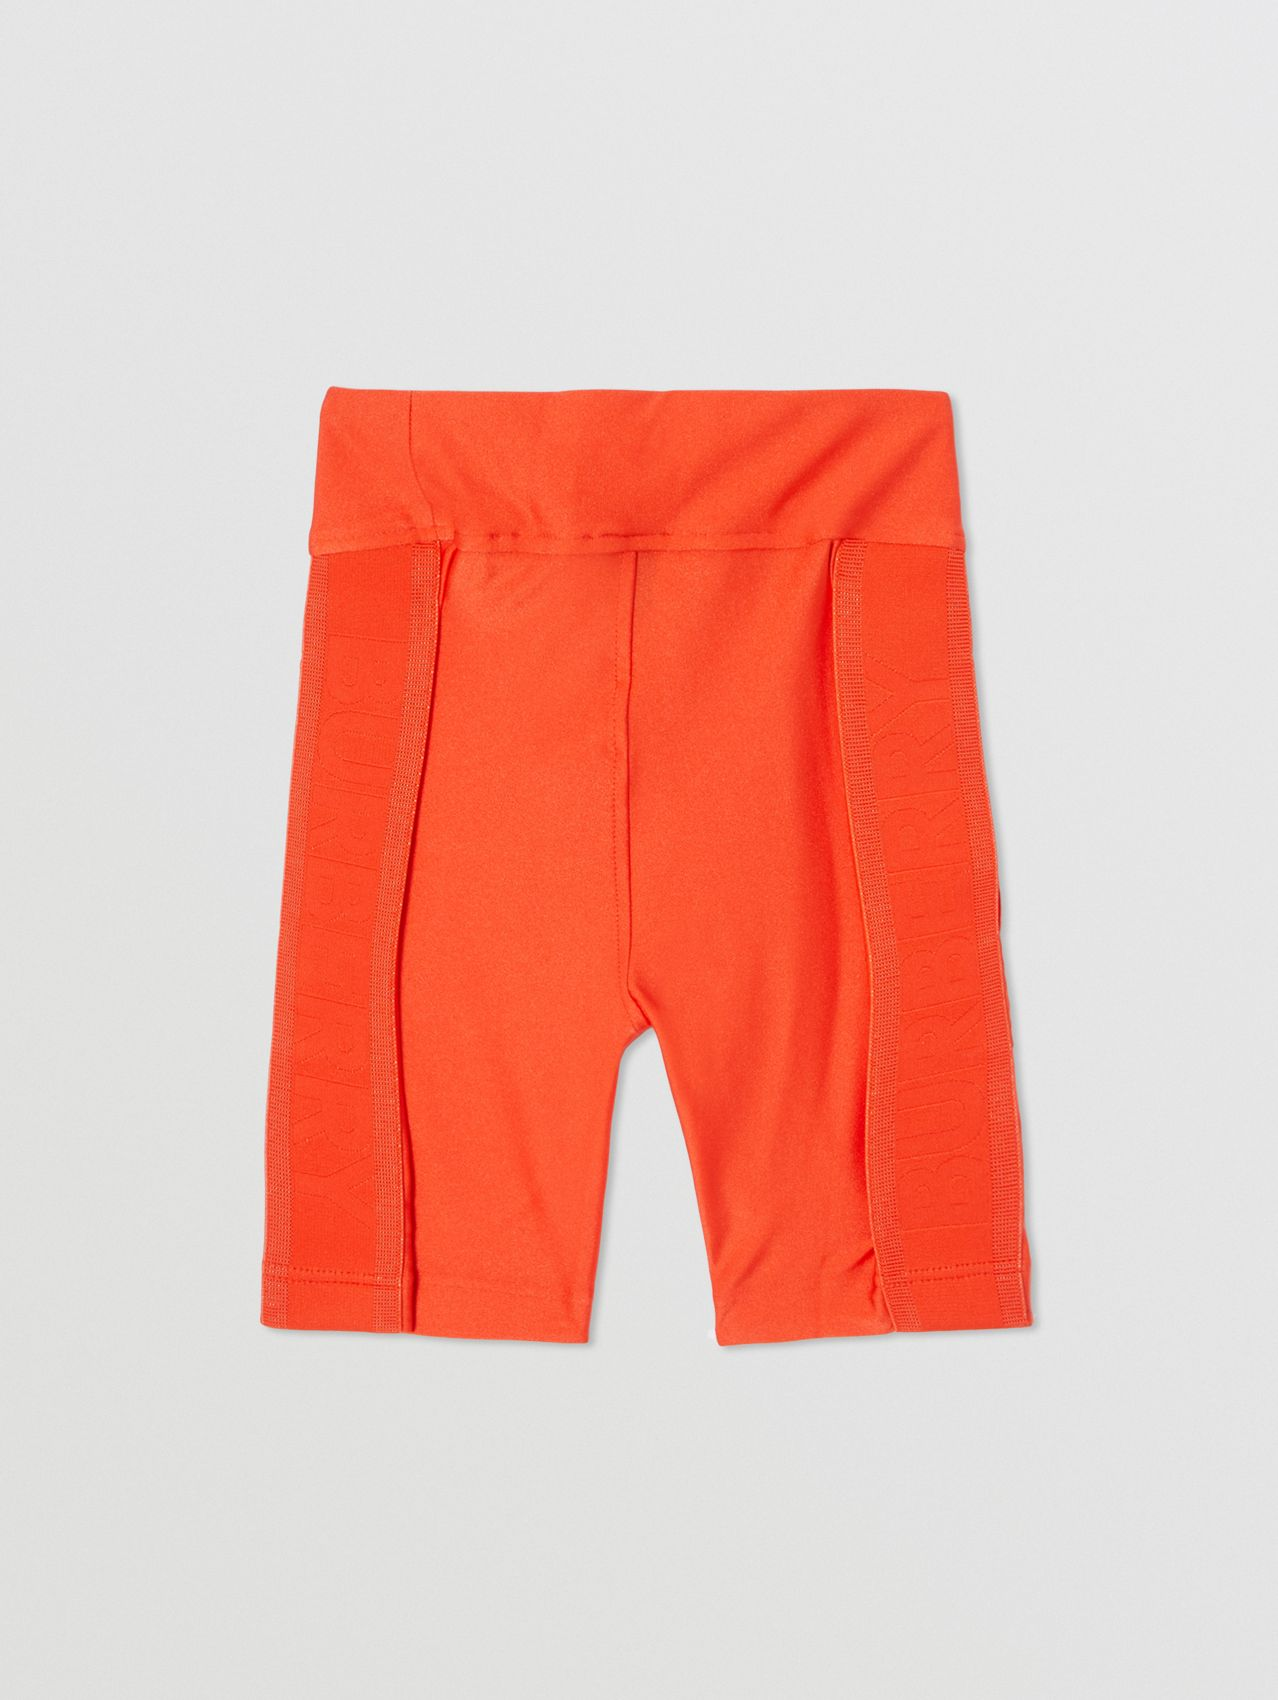 Coordinates Print Stretch Jersey Cycling Shorts in Orange Red